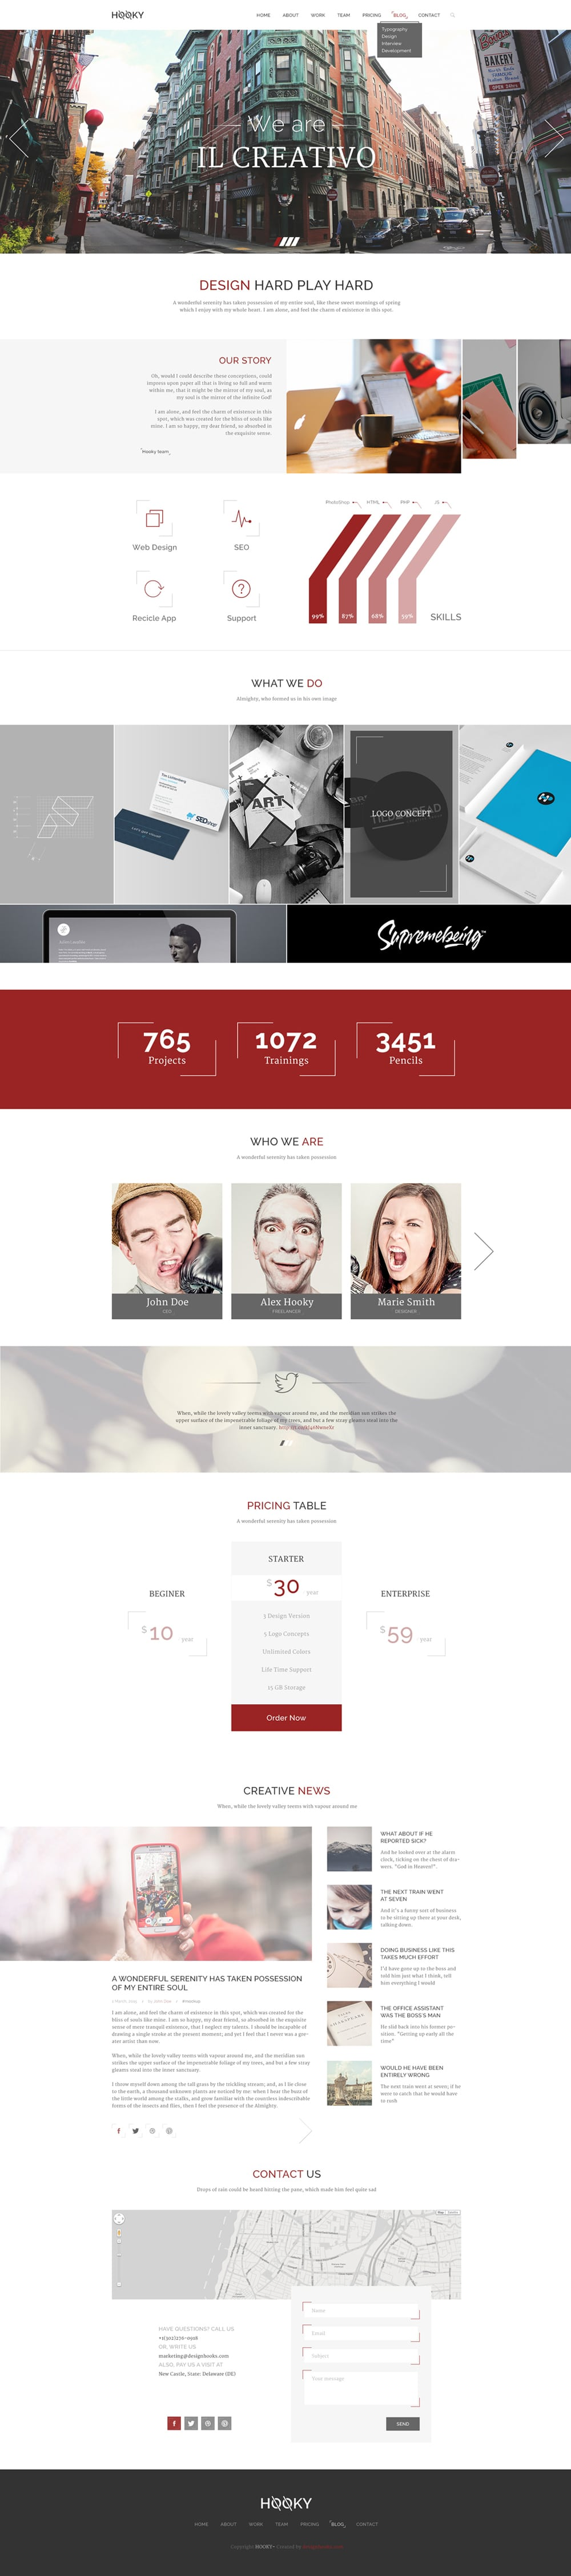 Hooky – Creative One Page Web Template PSD